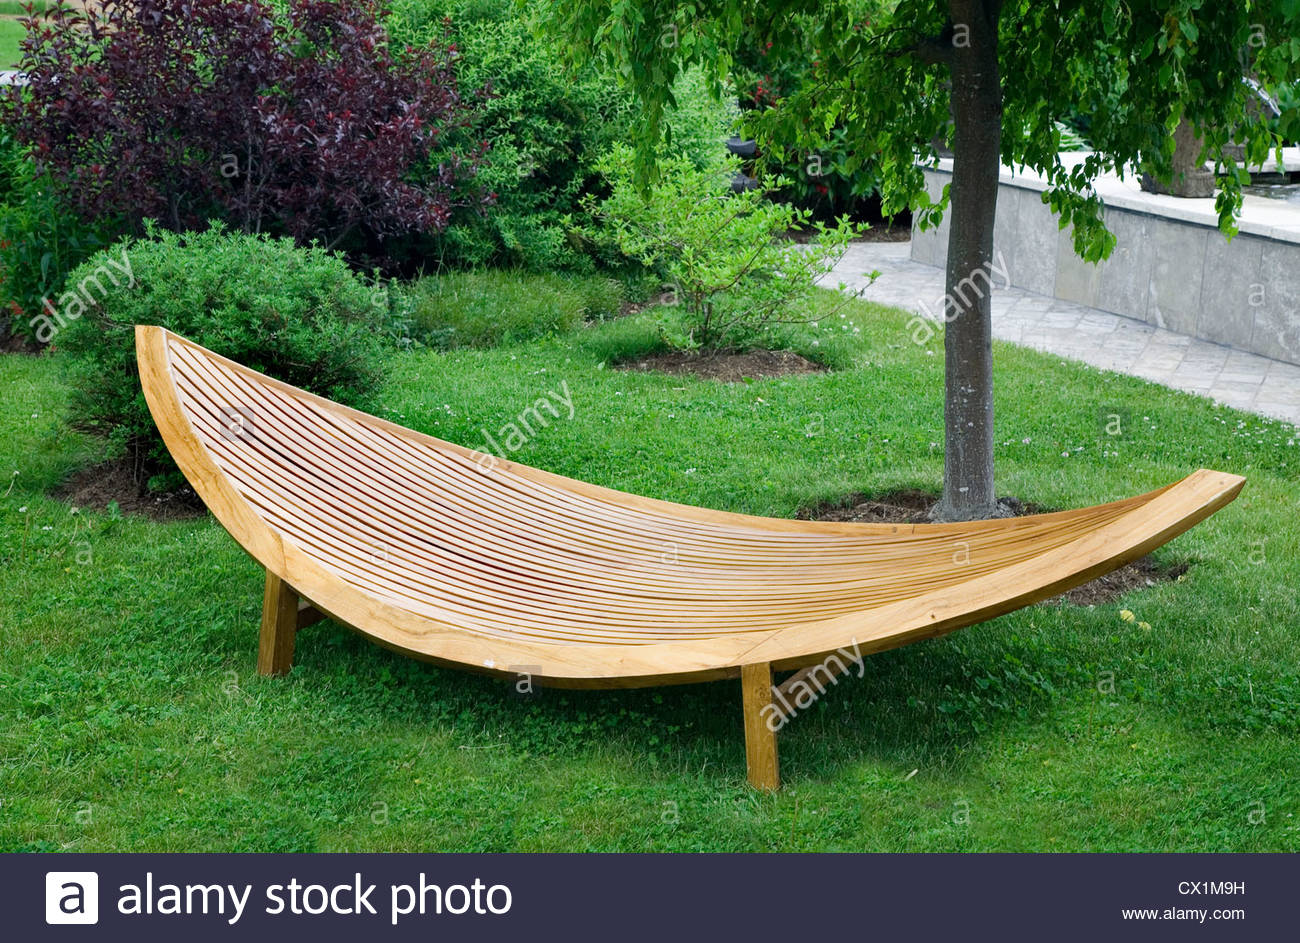 Garden furniture made of wood Simple modern garden furniture made of wood and lacquered.  - Stock Image EQXCYZK